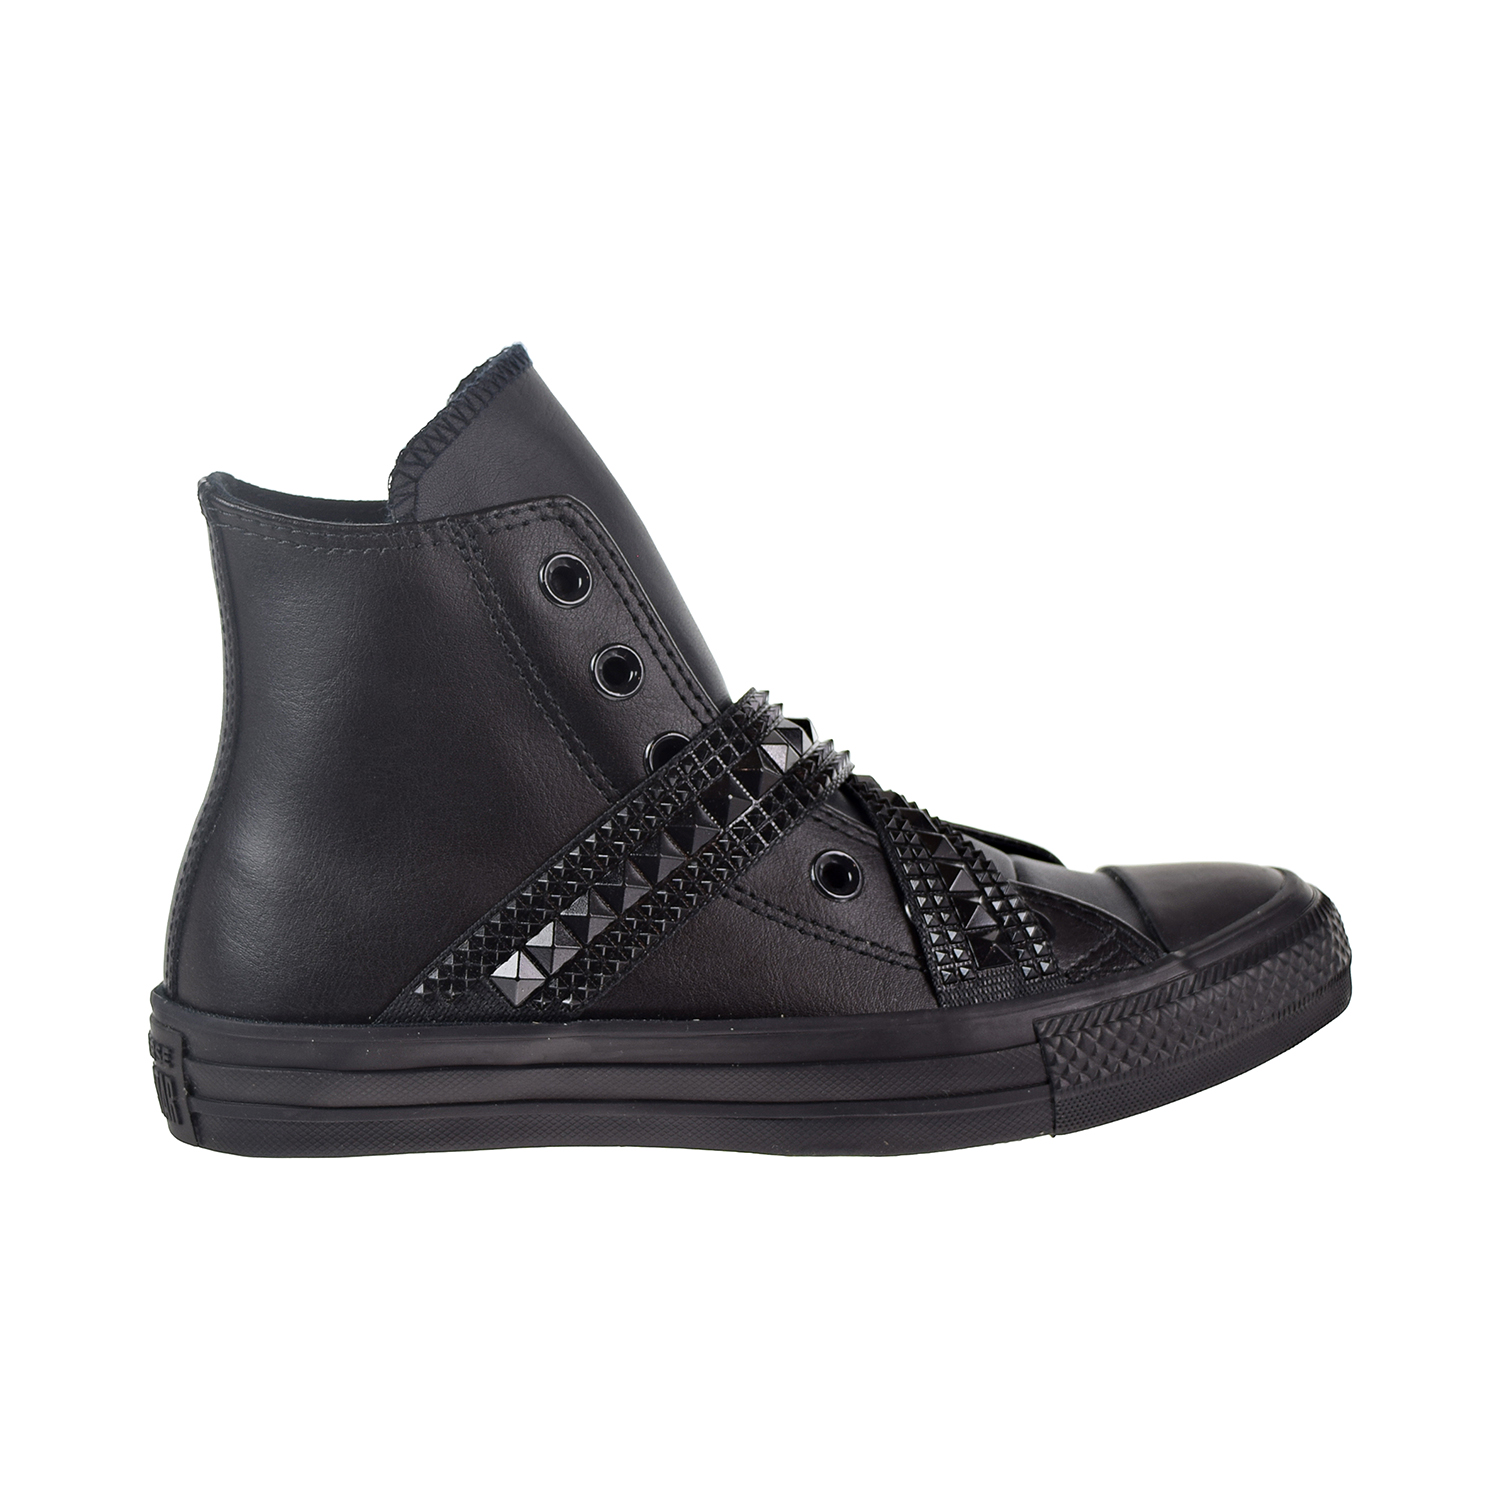 b5a08936281b Details about Converse Chuck Taylor All Star Punk Strap Hi Women s Shoes  Black 562430C